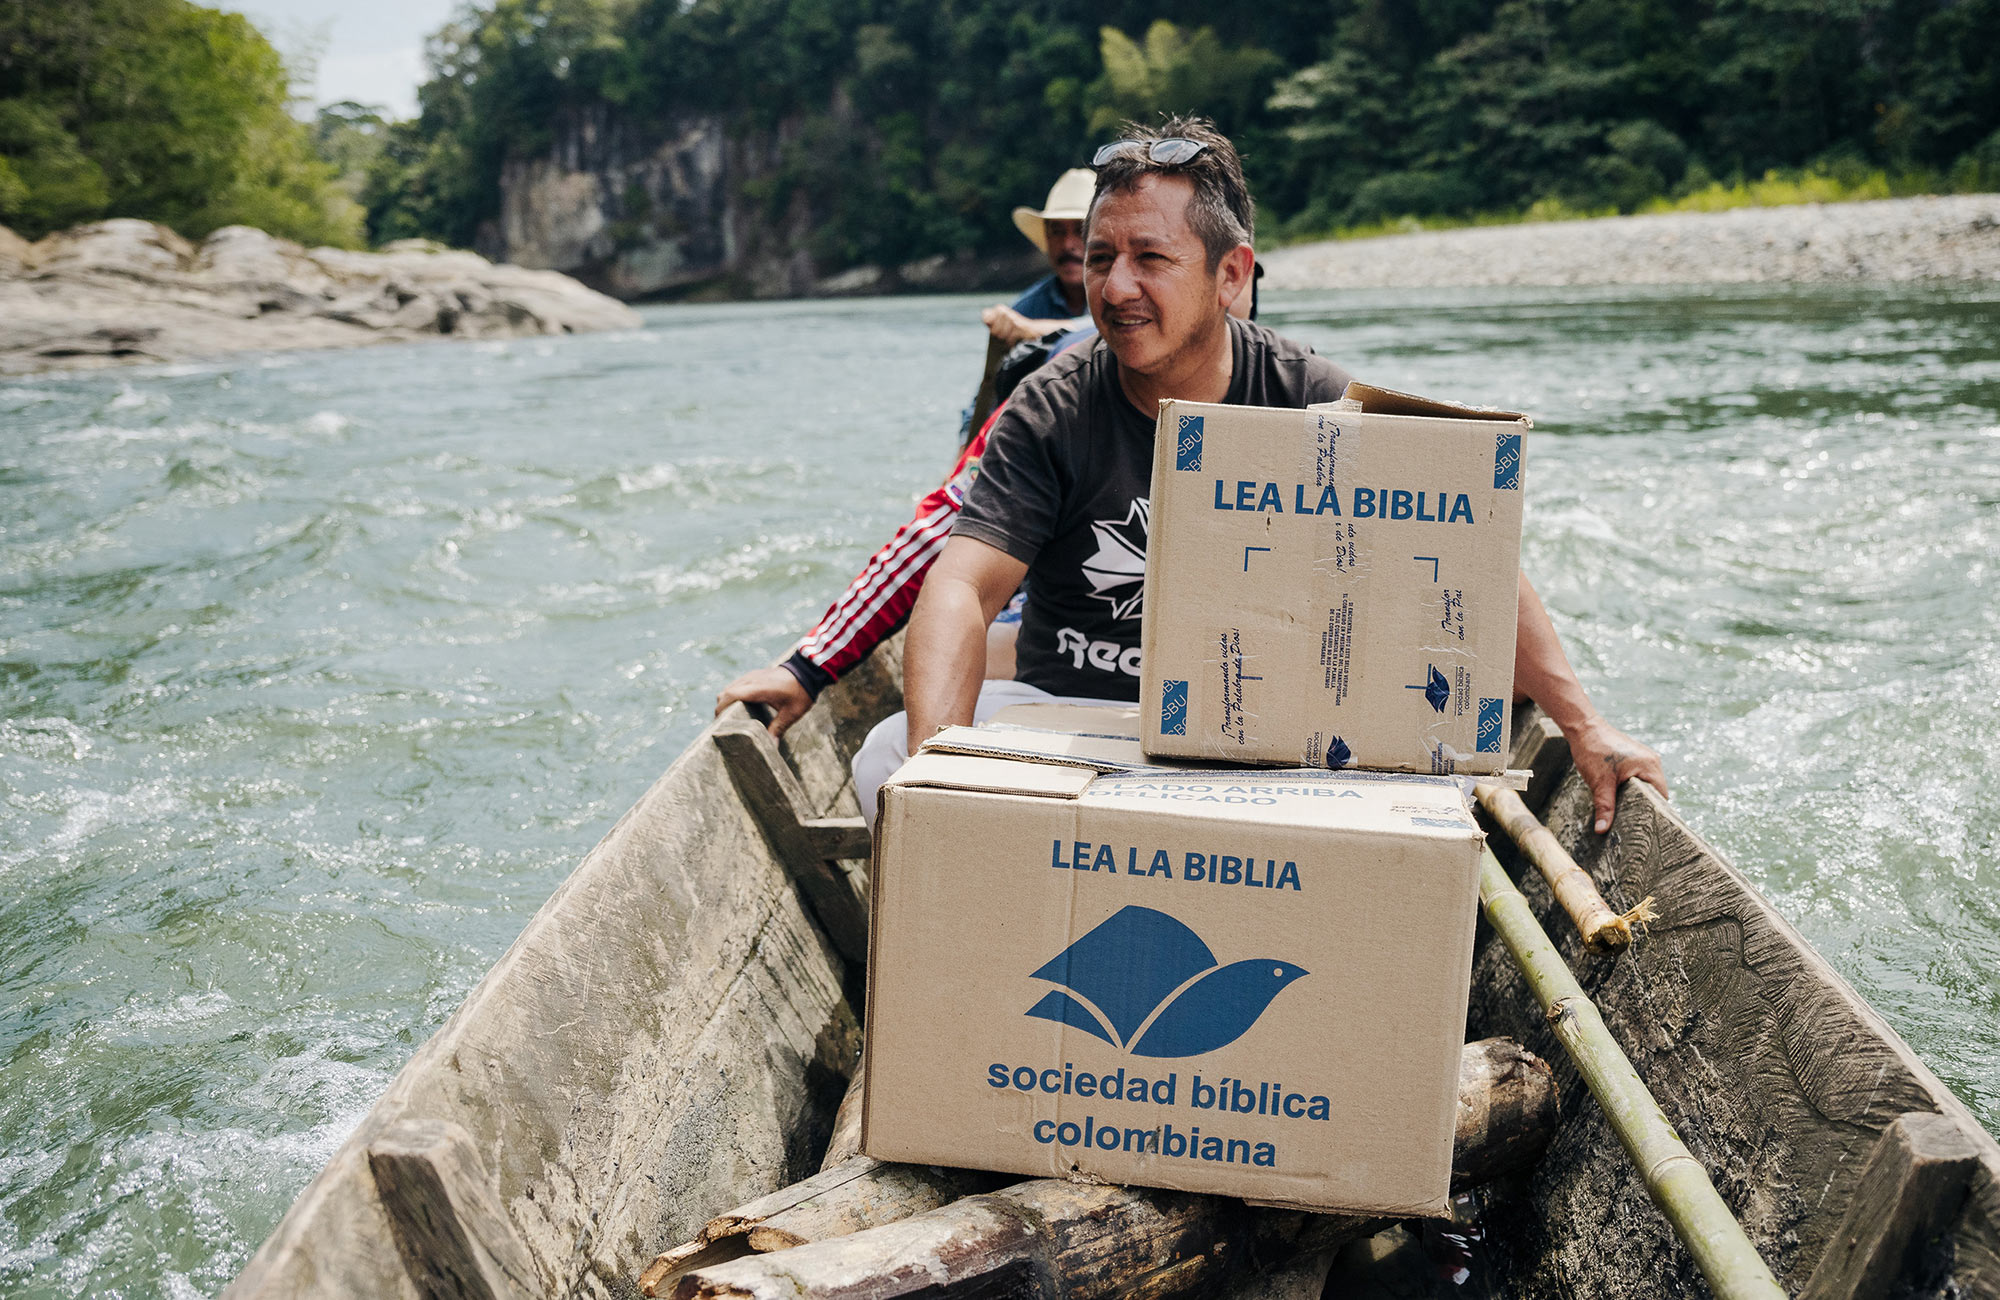 People in canoe transporting boxes of Bibles.